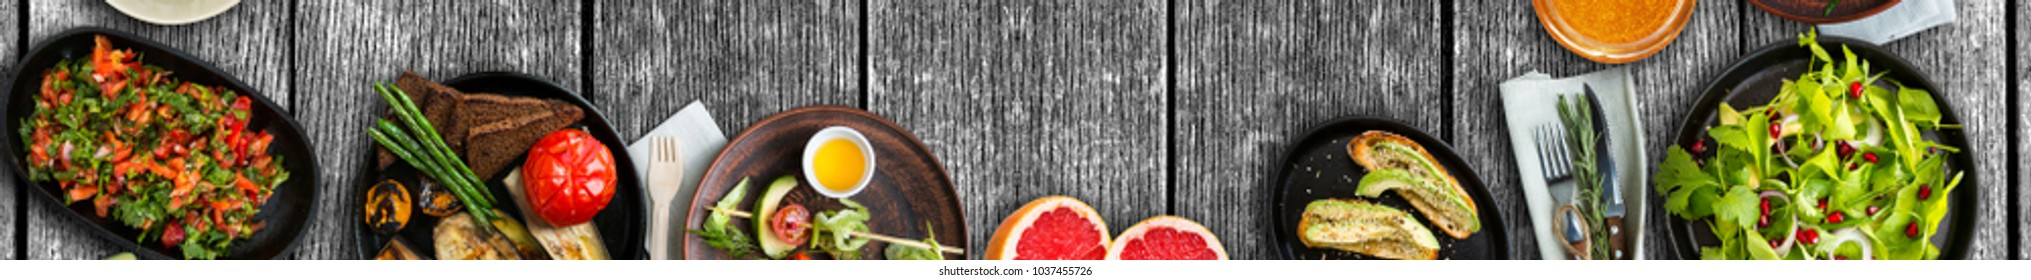 Full banner, wide food background, vegetarian meal and healthy products on rustic wooden table, wide panoramic image. Copy space.